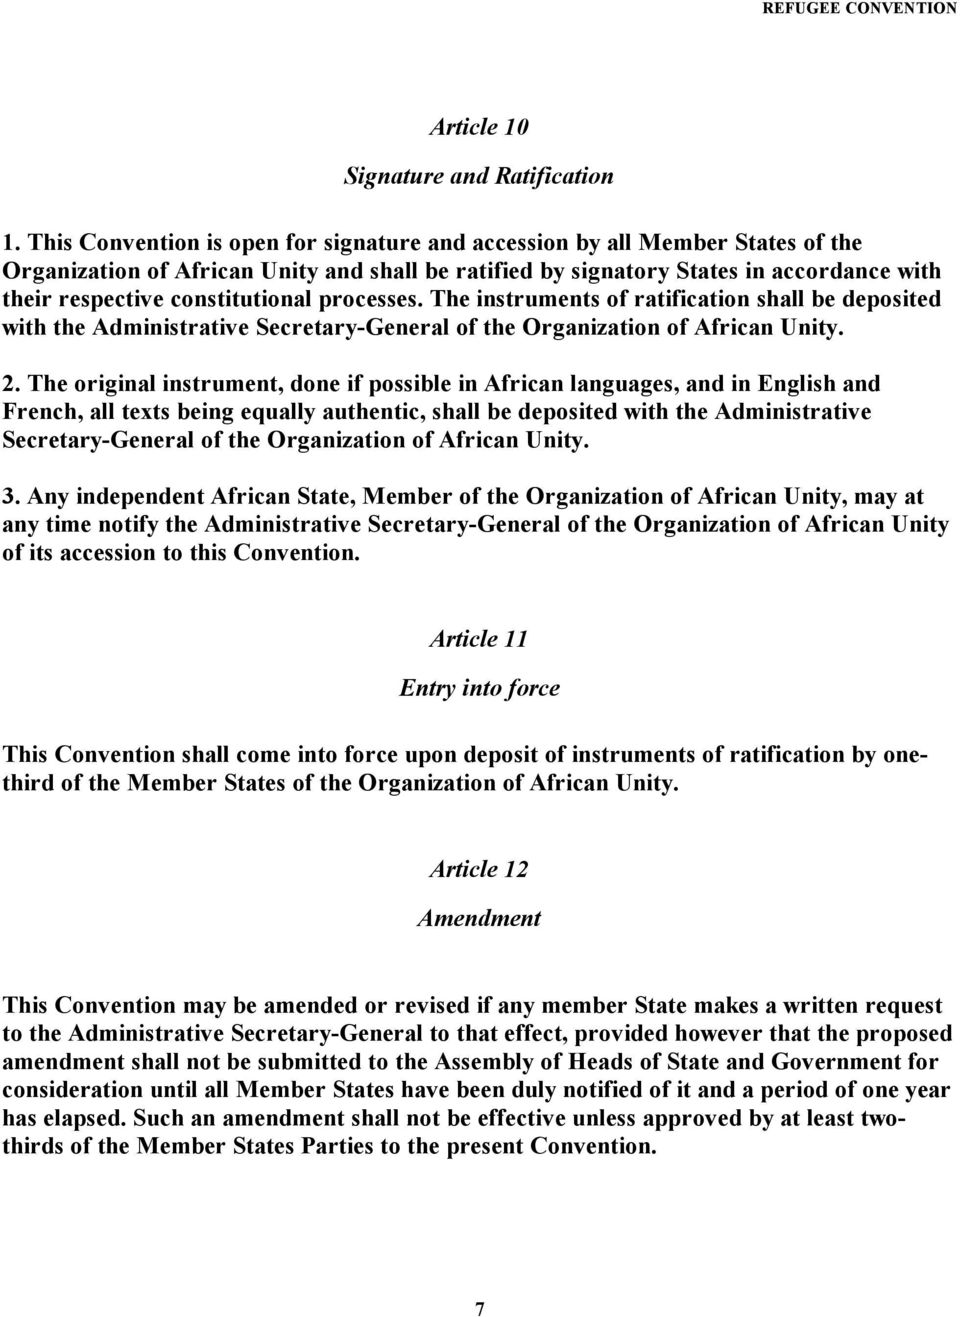 constitutional processes. The instruments of ratification shall be deposited with the Administrative Secretary-General of the Organization of African Unity. 2.